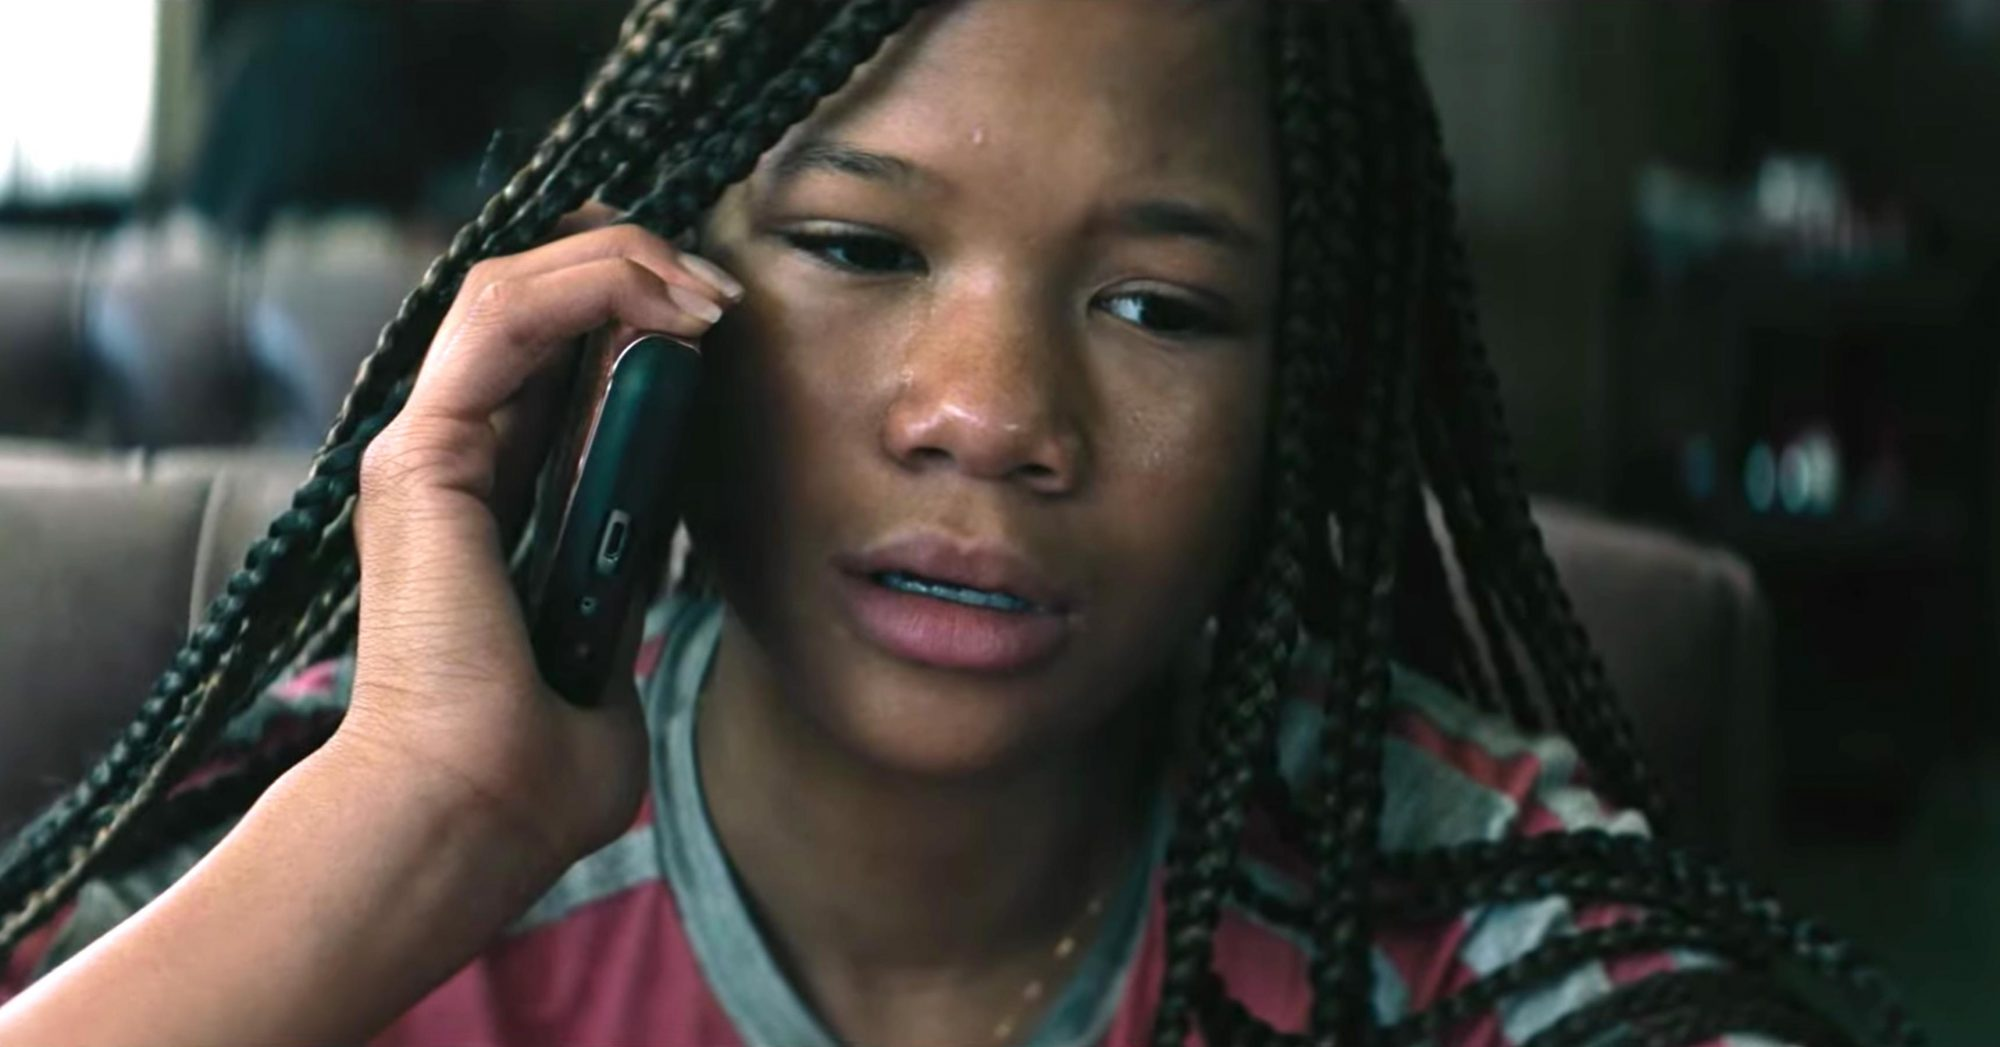 Don't Let Go - Official Trailer (2019) (screen grab) Storm Reid https://www.youtube.com/watch?v=RB-_oNDH0d8 CR: Blumhouse Productions